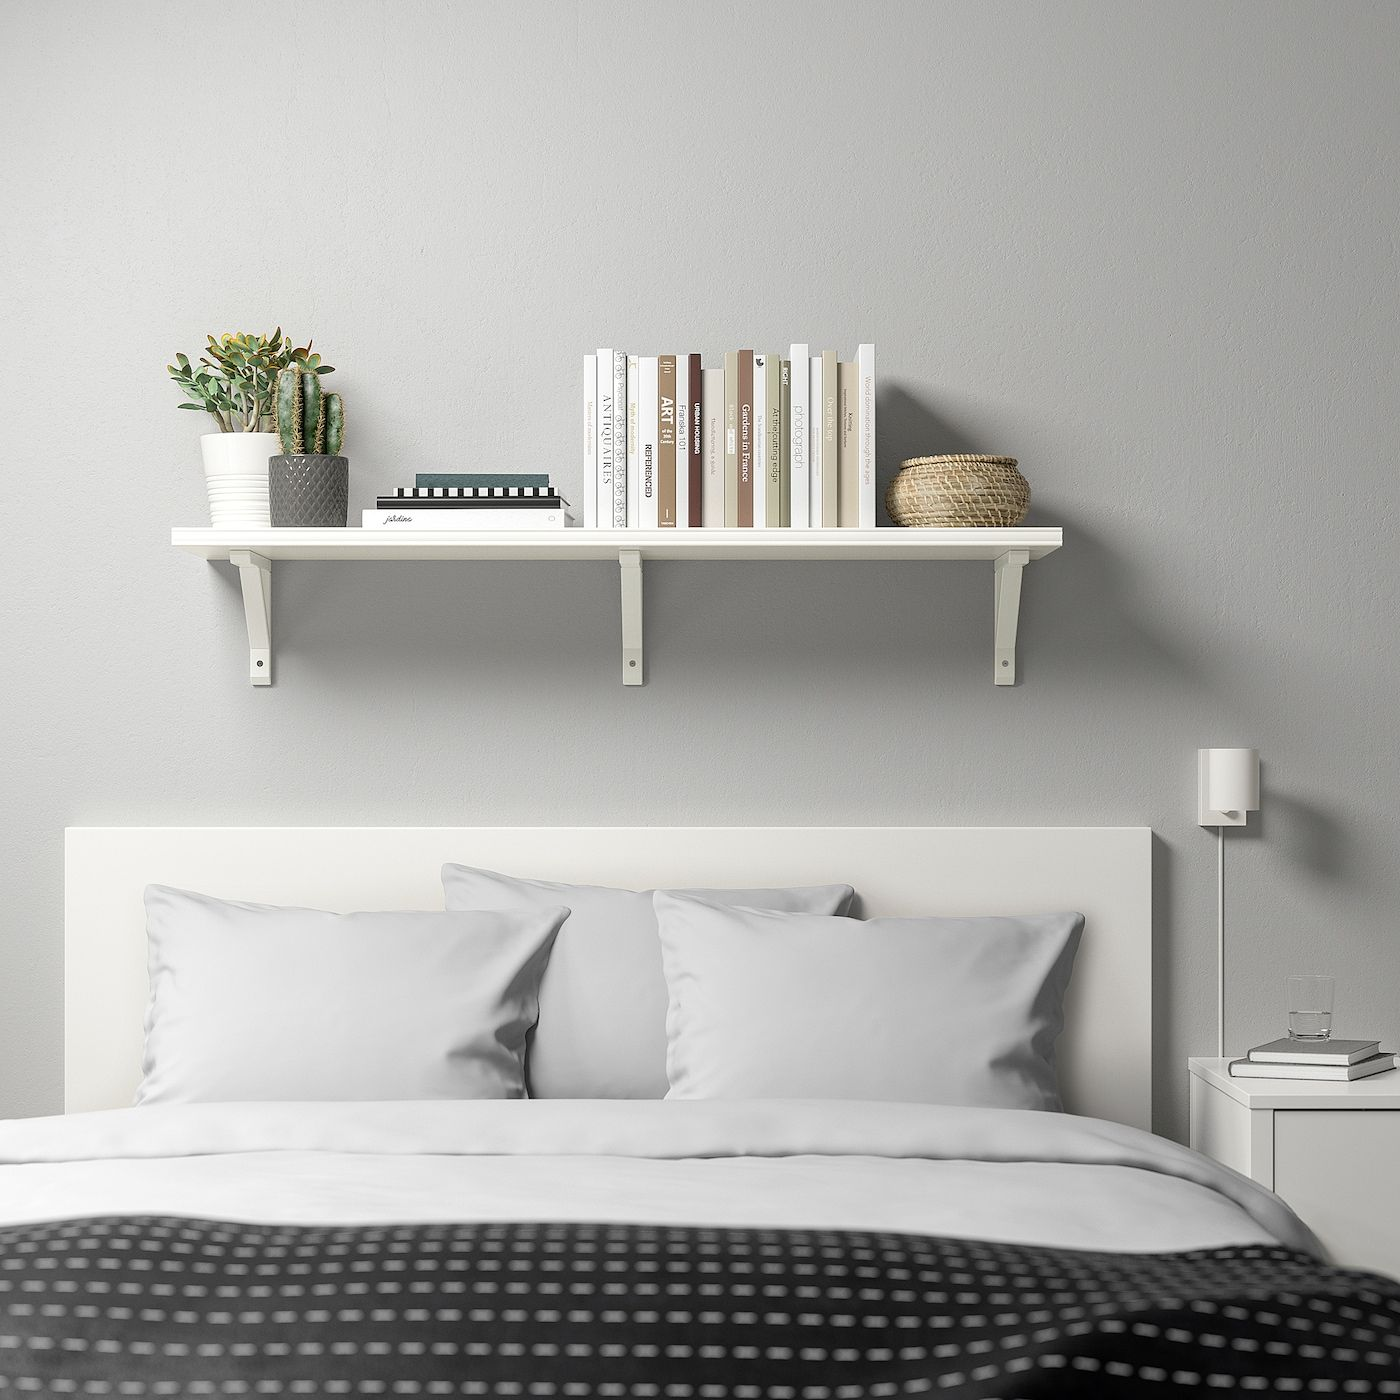 Regal Hinter Bett Bergshult / Sandshult Wall Shelf - White/white Stained Aspen - Ikea | Schlafzimmer Wandregale, Regalwand, Wandregal Weiß